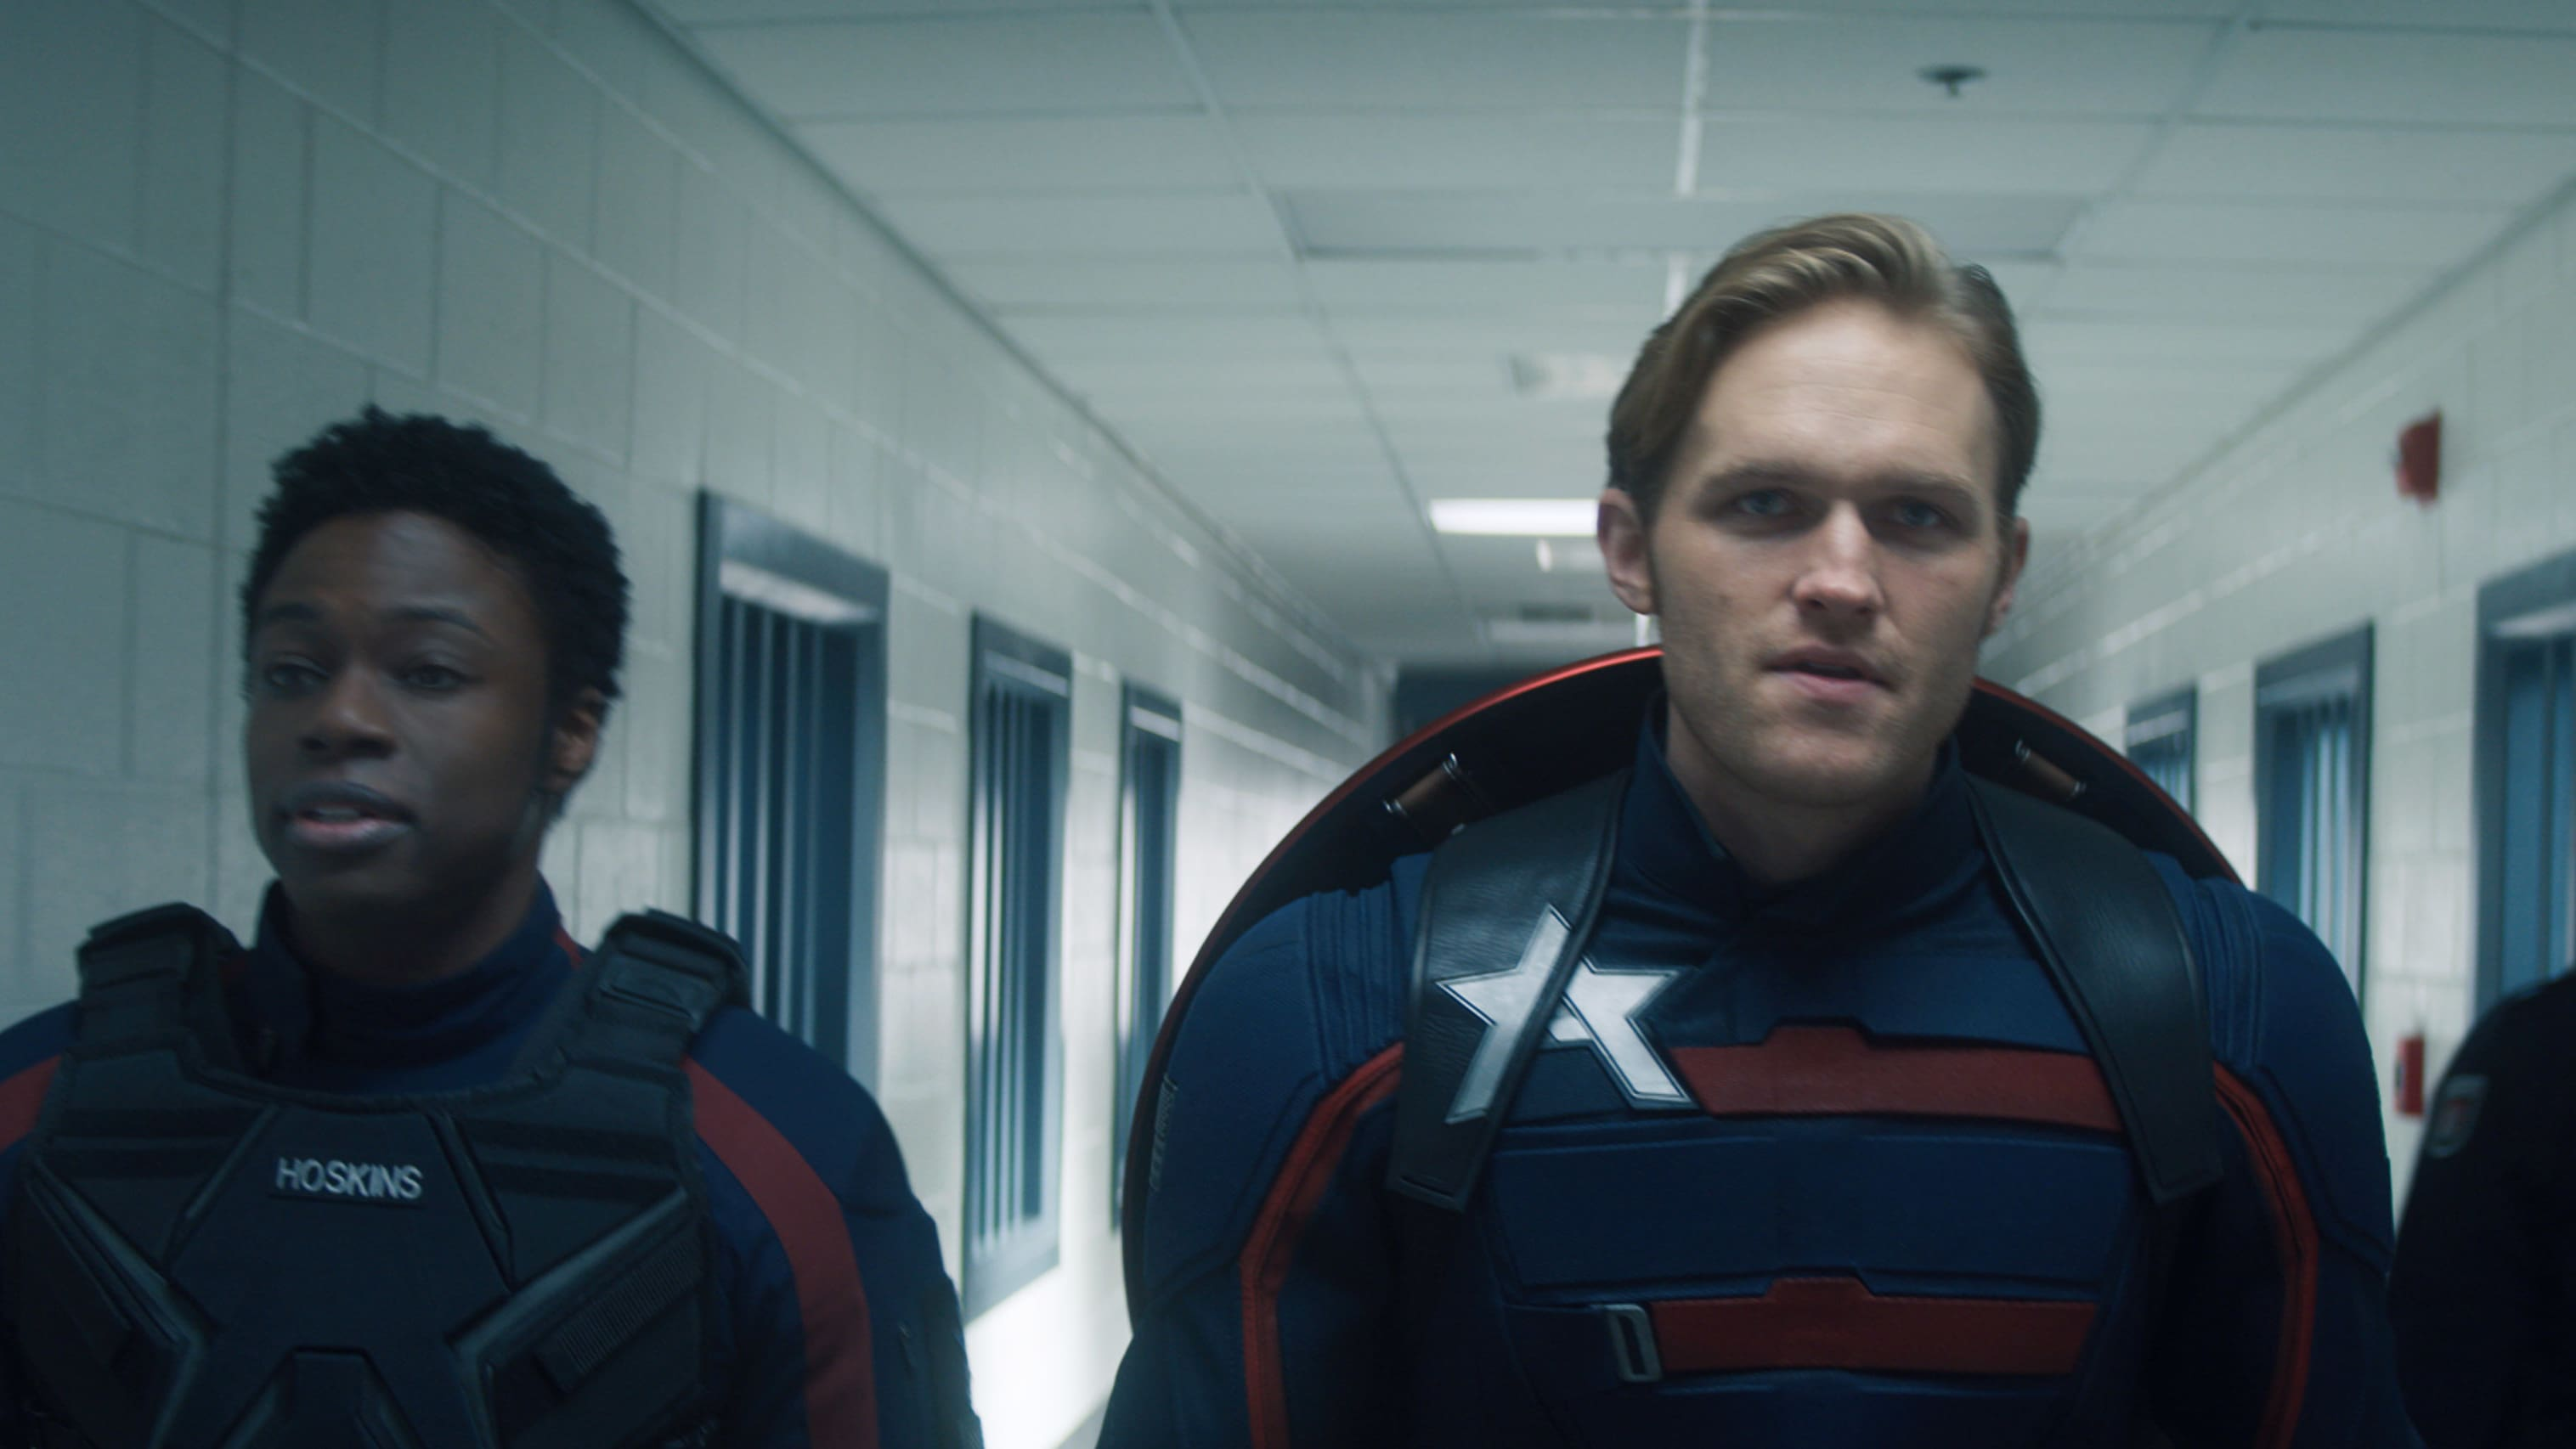 (L-R): Lemar Hoskins (Clé Bennett) and John Walker (Wyatt Russell) in Marvel Studios' THE FALCON AND THE WINTER SOLDIER exclusively on Disney+. Photo courtesy of Marvel Studios. ©Marvel Studios 2021. All Rights Reserved.